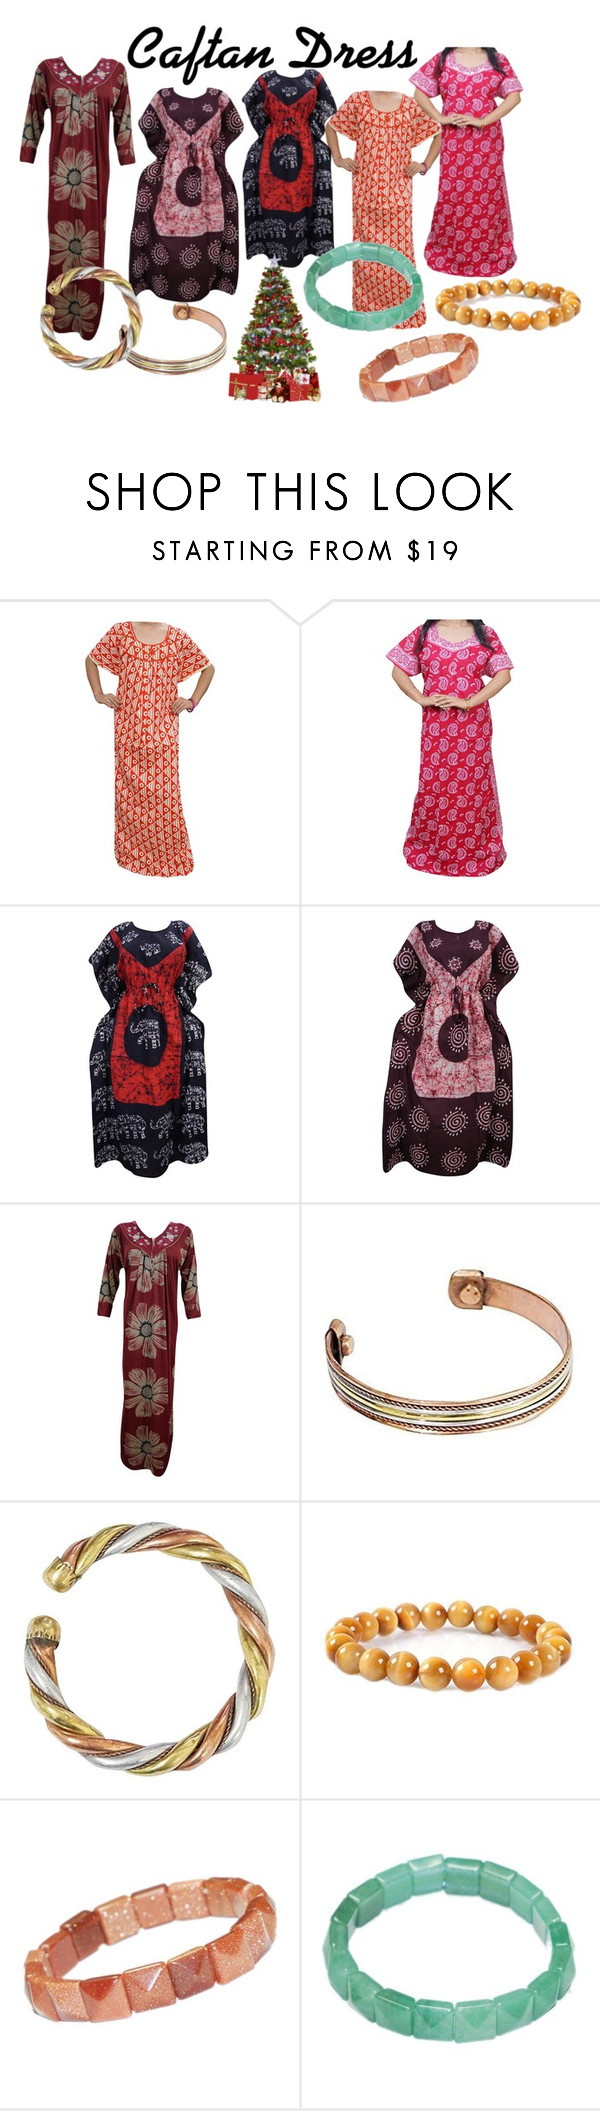 """""""Women's Boho Caftans"""" by era-chandok ❤ liked on Polyvore featuring Therapy, maxidress, Bohemian, kaftan, coverUp and Christmassale"""